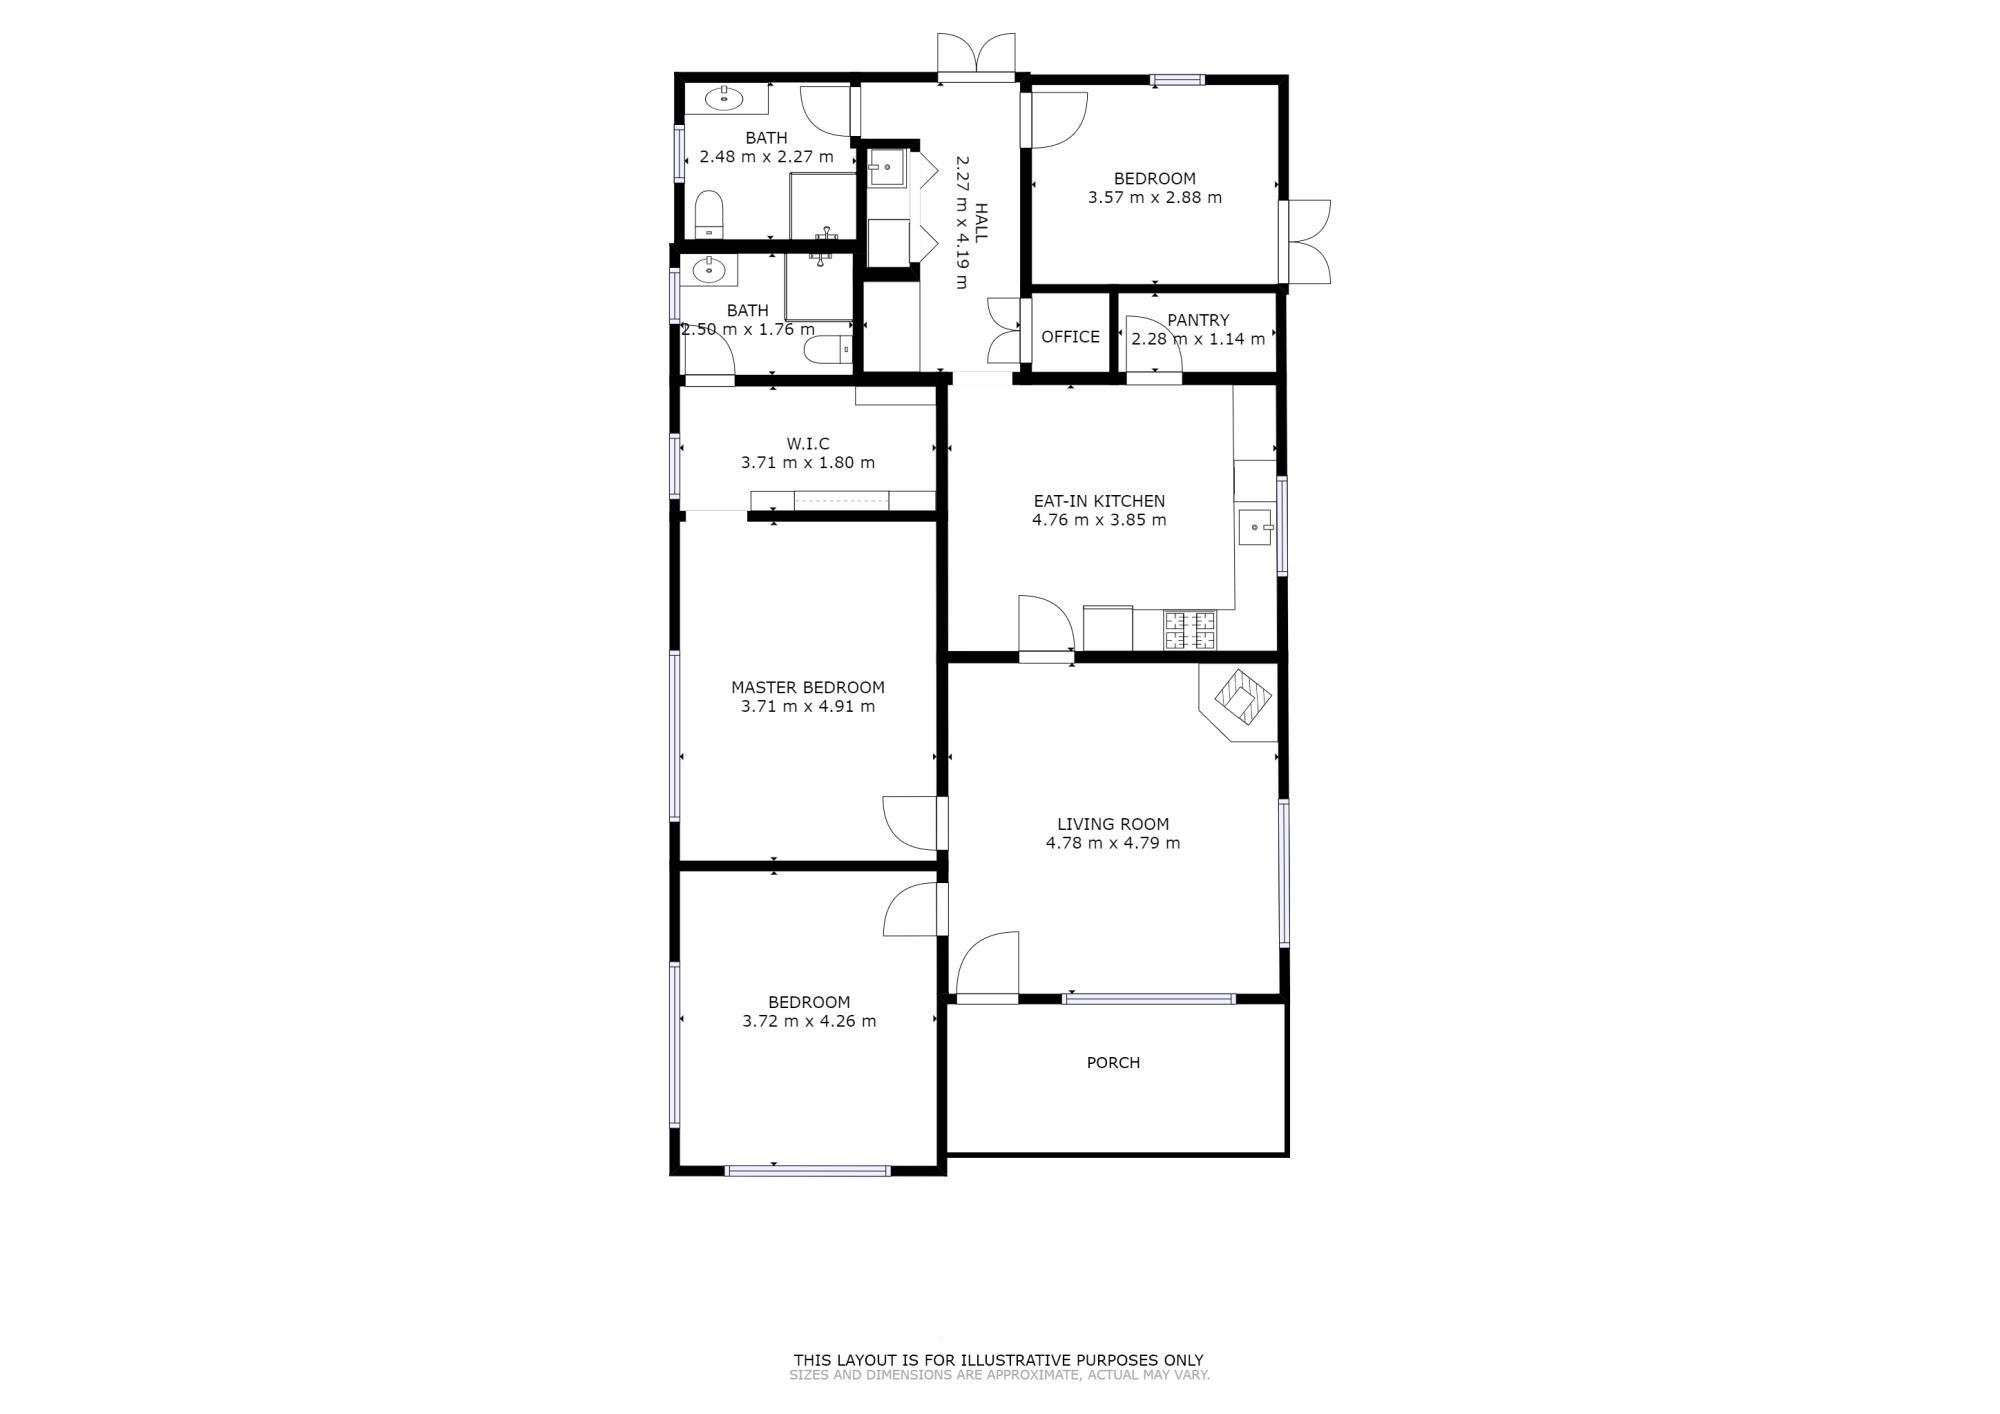 429 Waikiekie North Road Waiotiraproperty floorplan image